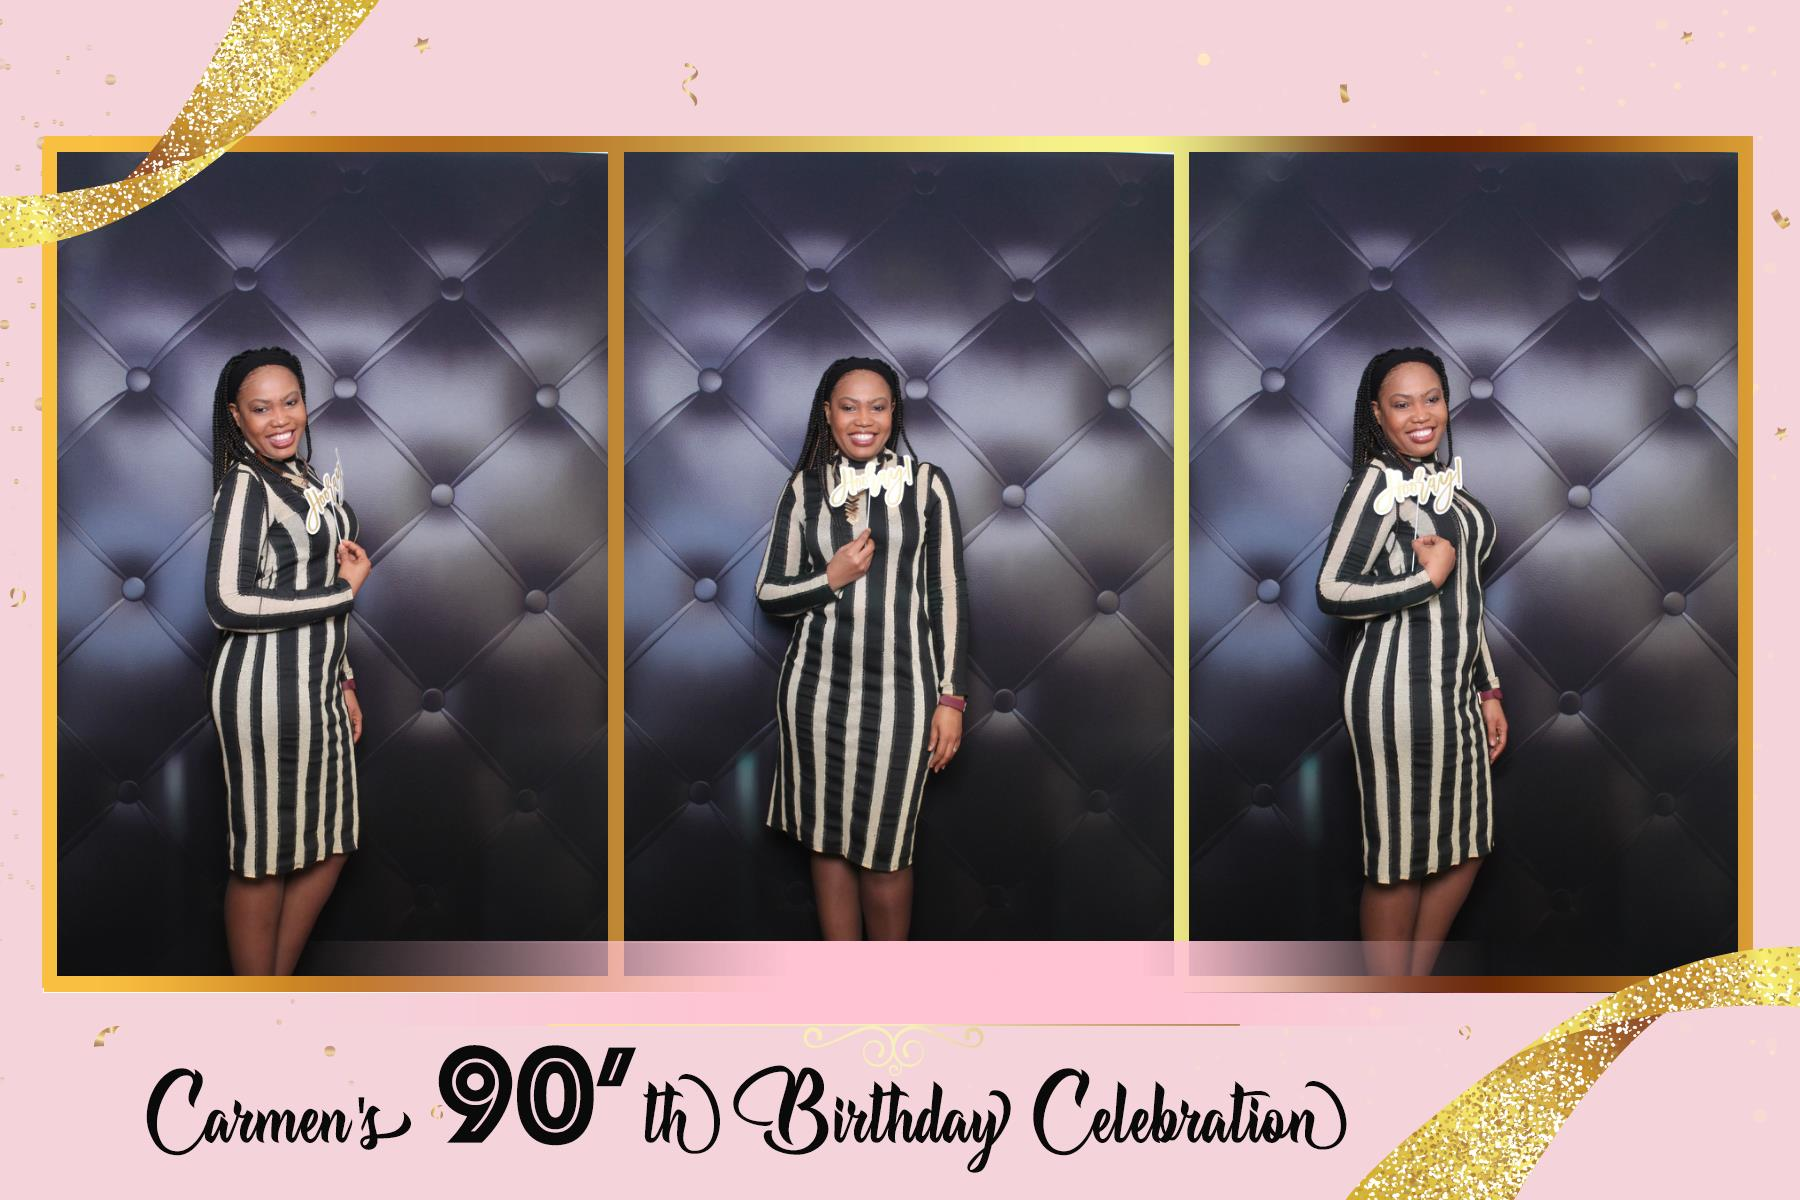 Carmen's 90th Birthday Celebration